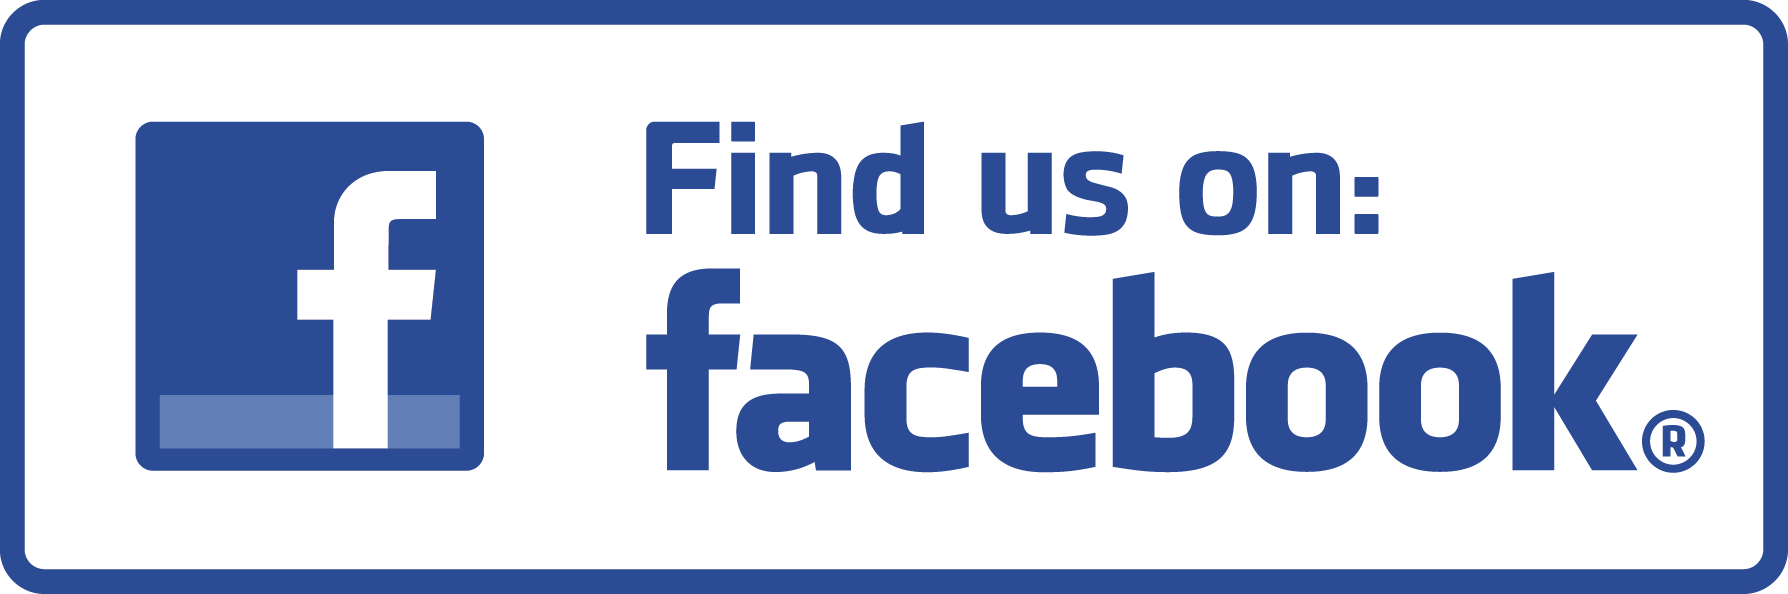 Facebook - find us on facebook button